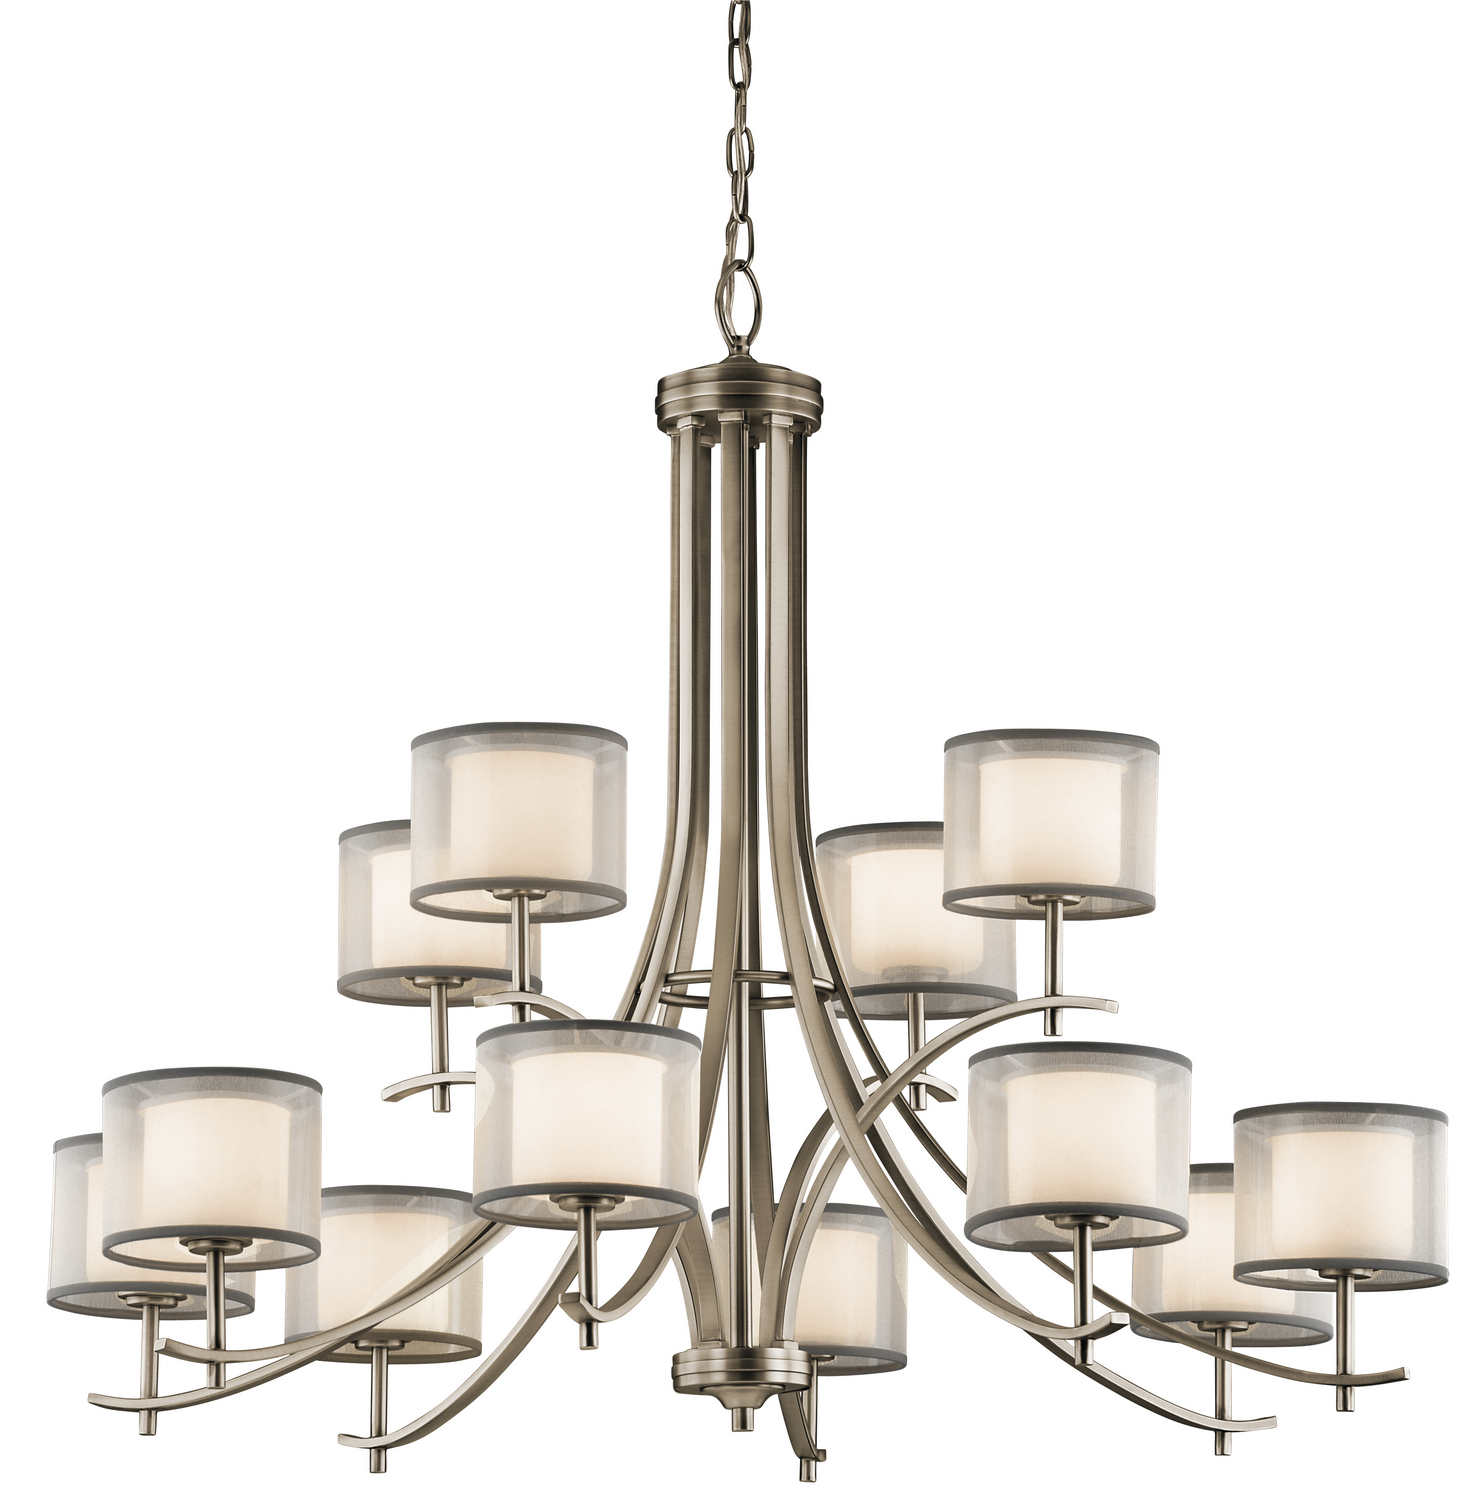 12 Light Chandelier from the Tallie collection by Kichler 43151AP